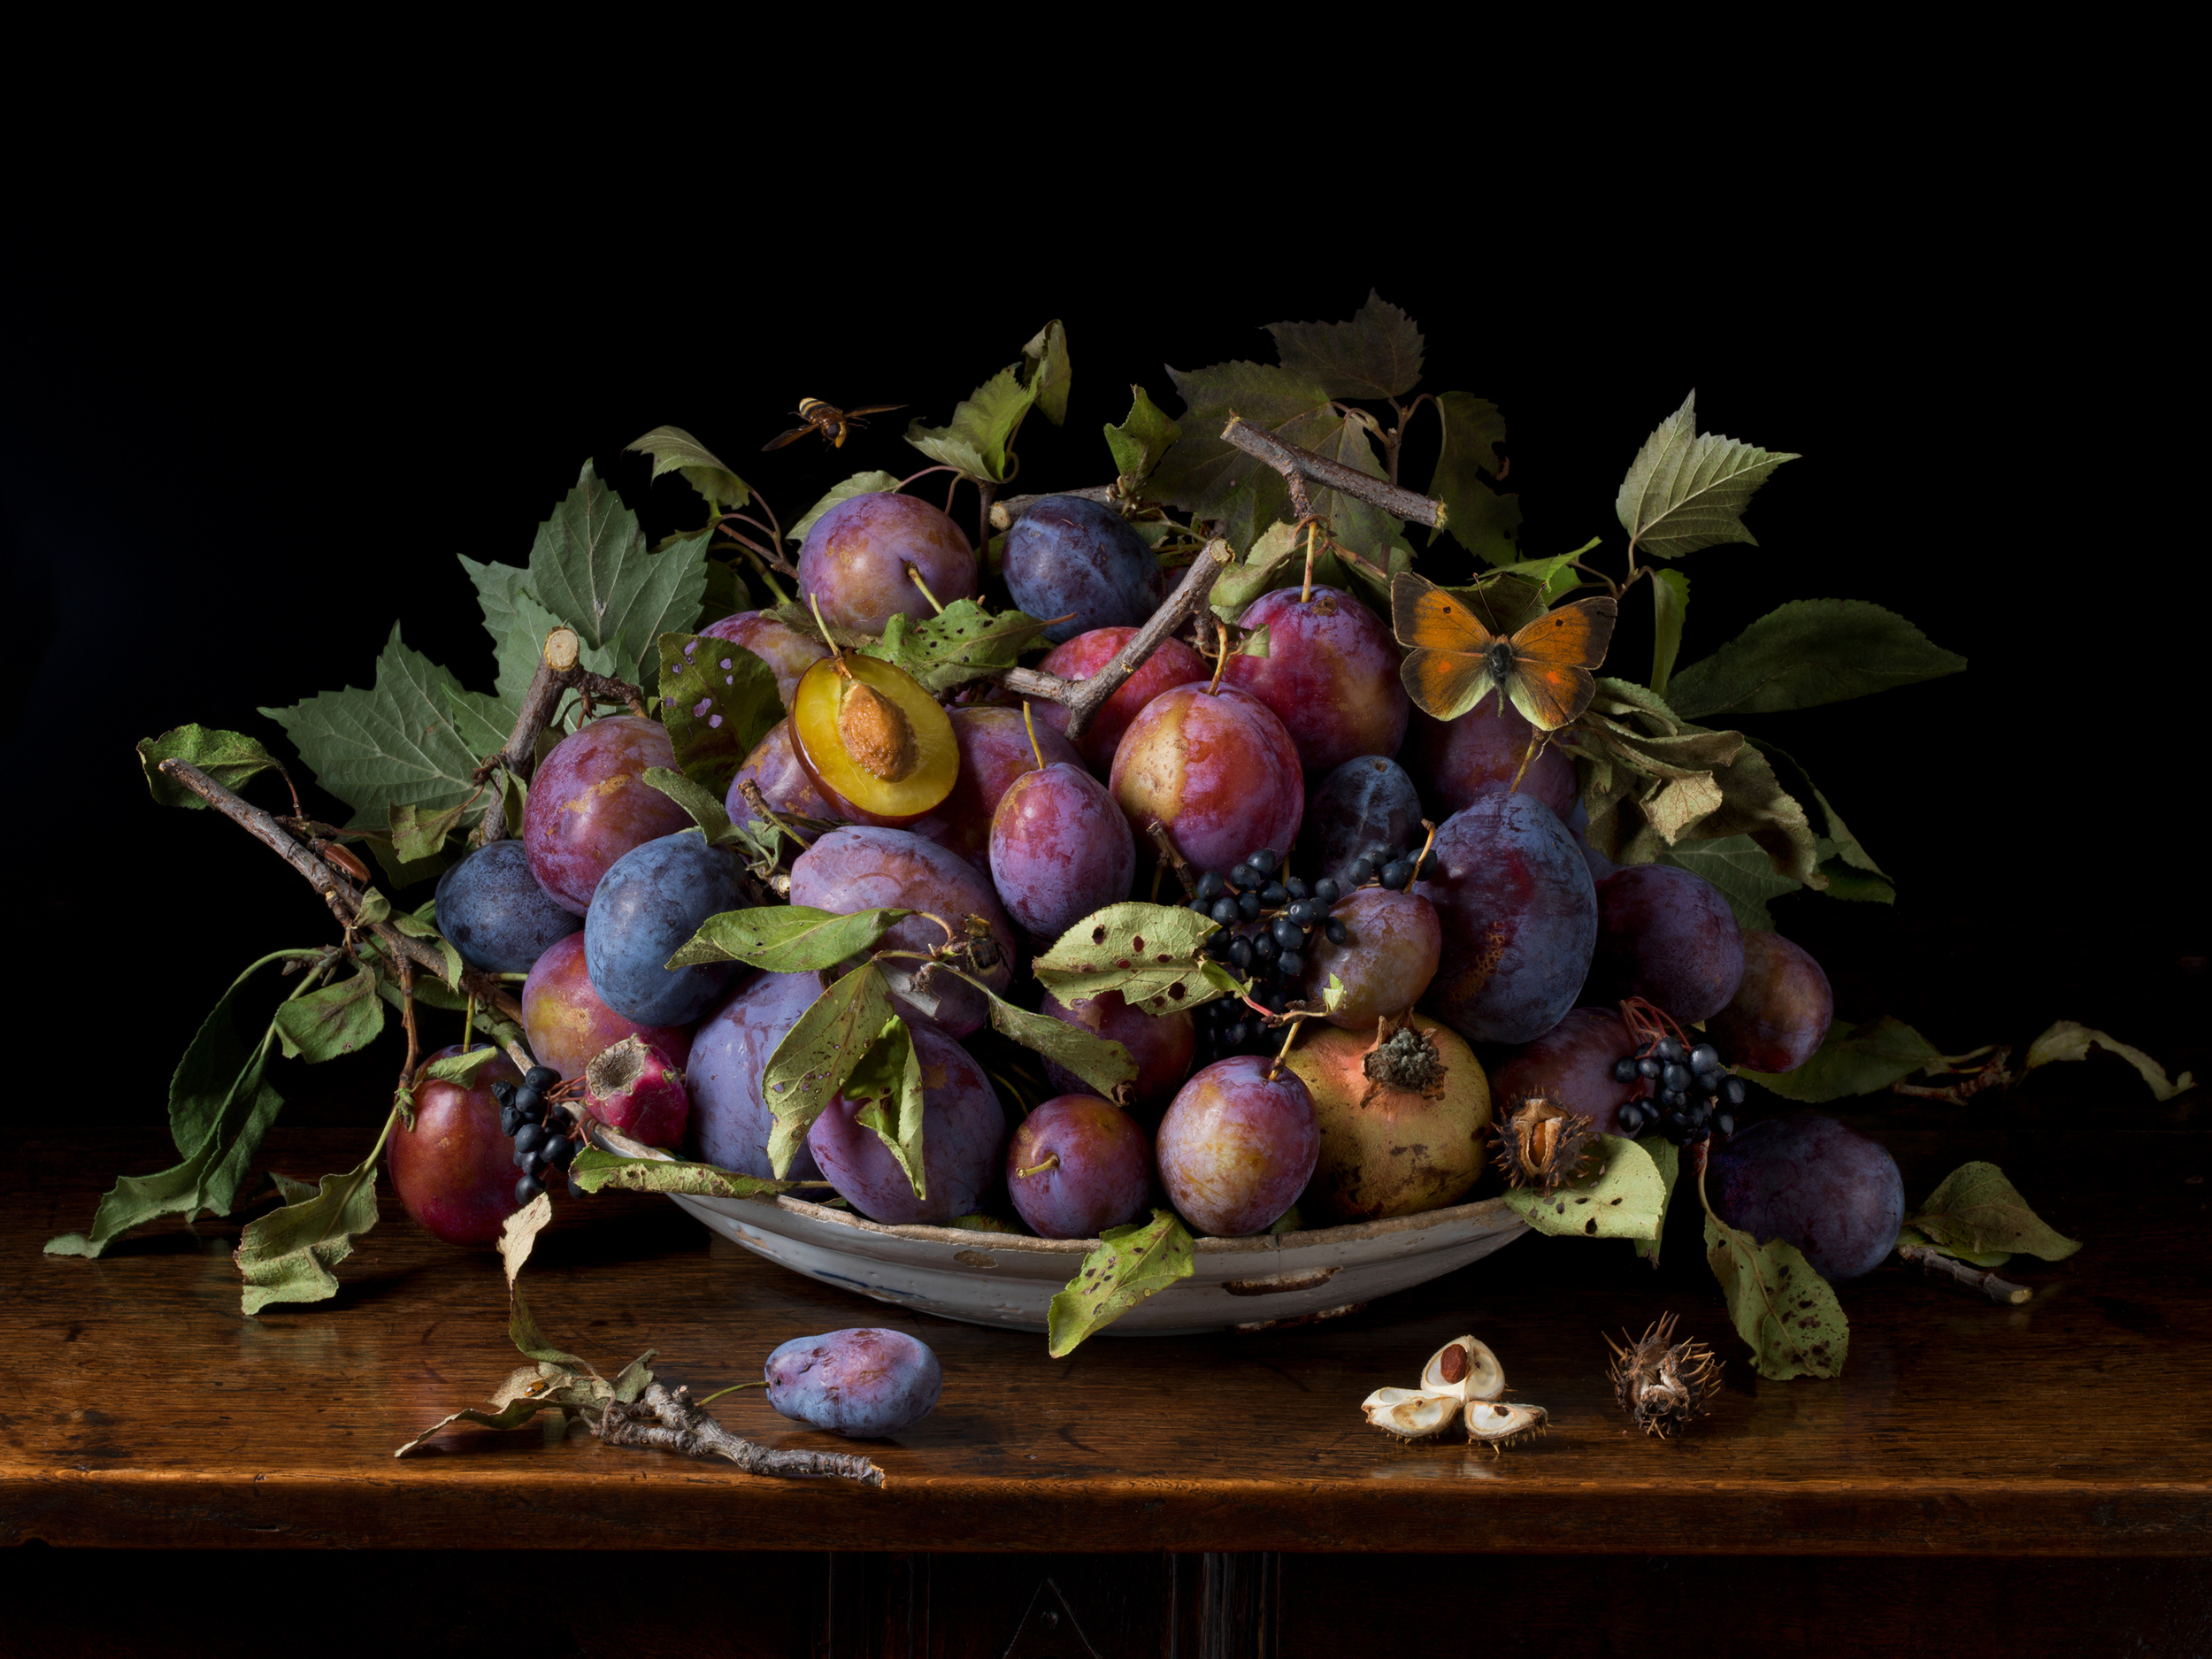 Italian Plums, After G.G. 2015